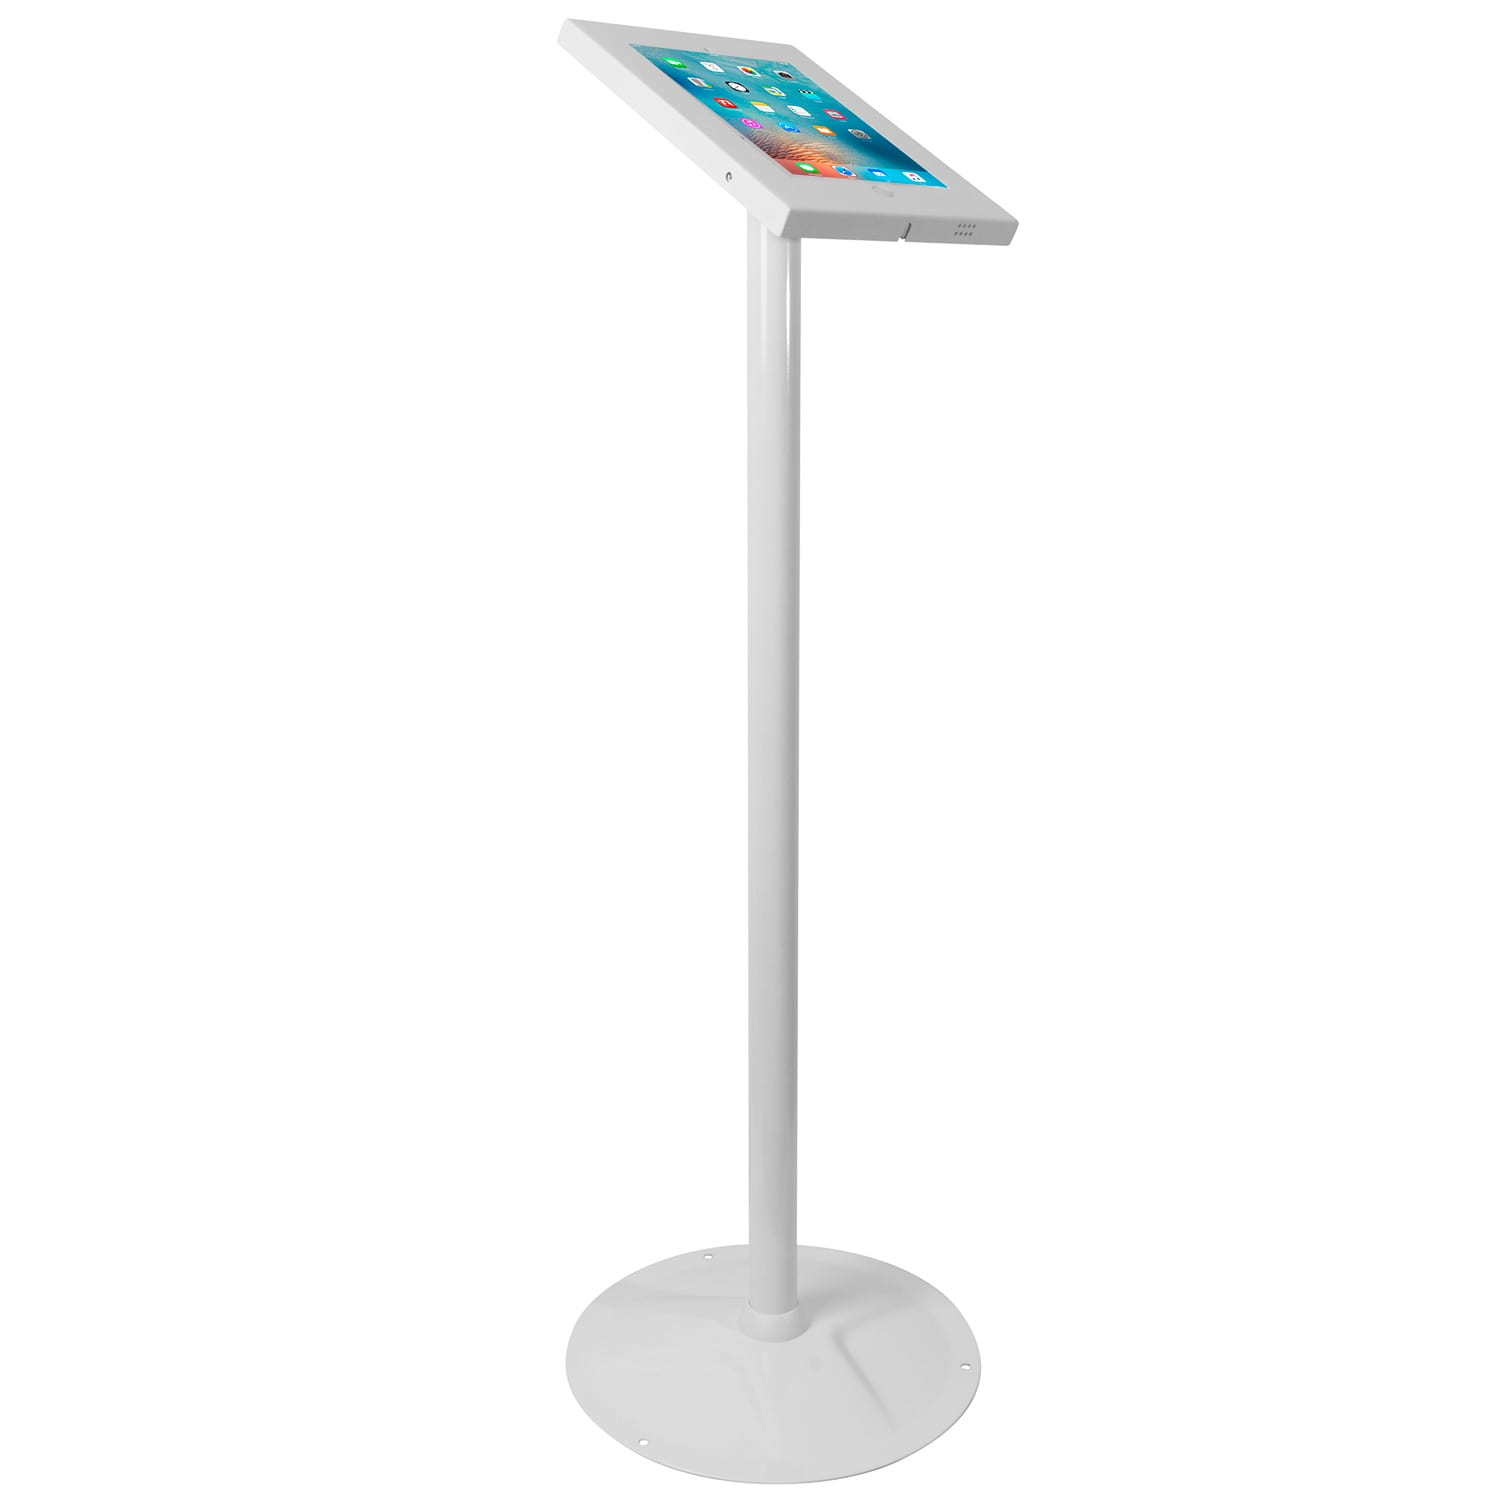 Brateck PAD12-02A Anti-theft iPad Kiosk Floor Stand White